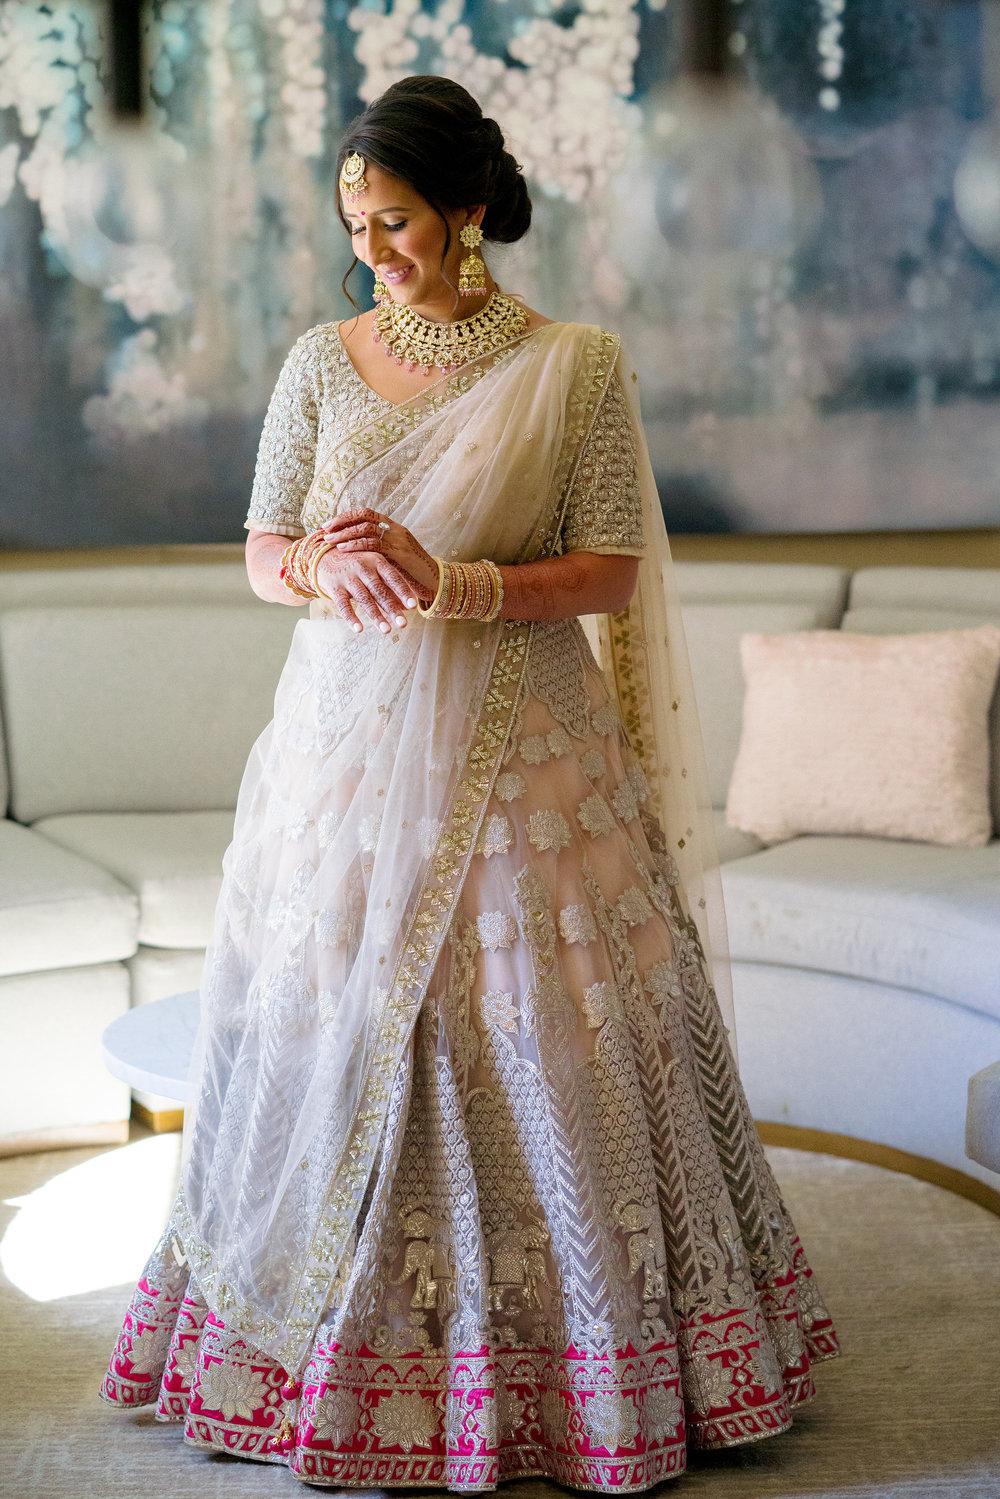 INDIAN WEDDING BRIDE IN WEDDING ATTIRE2.JPG